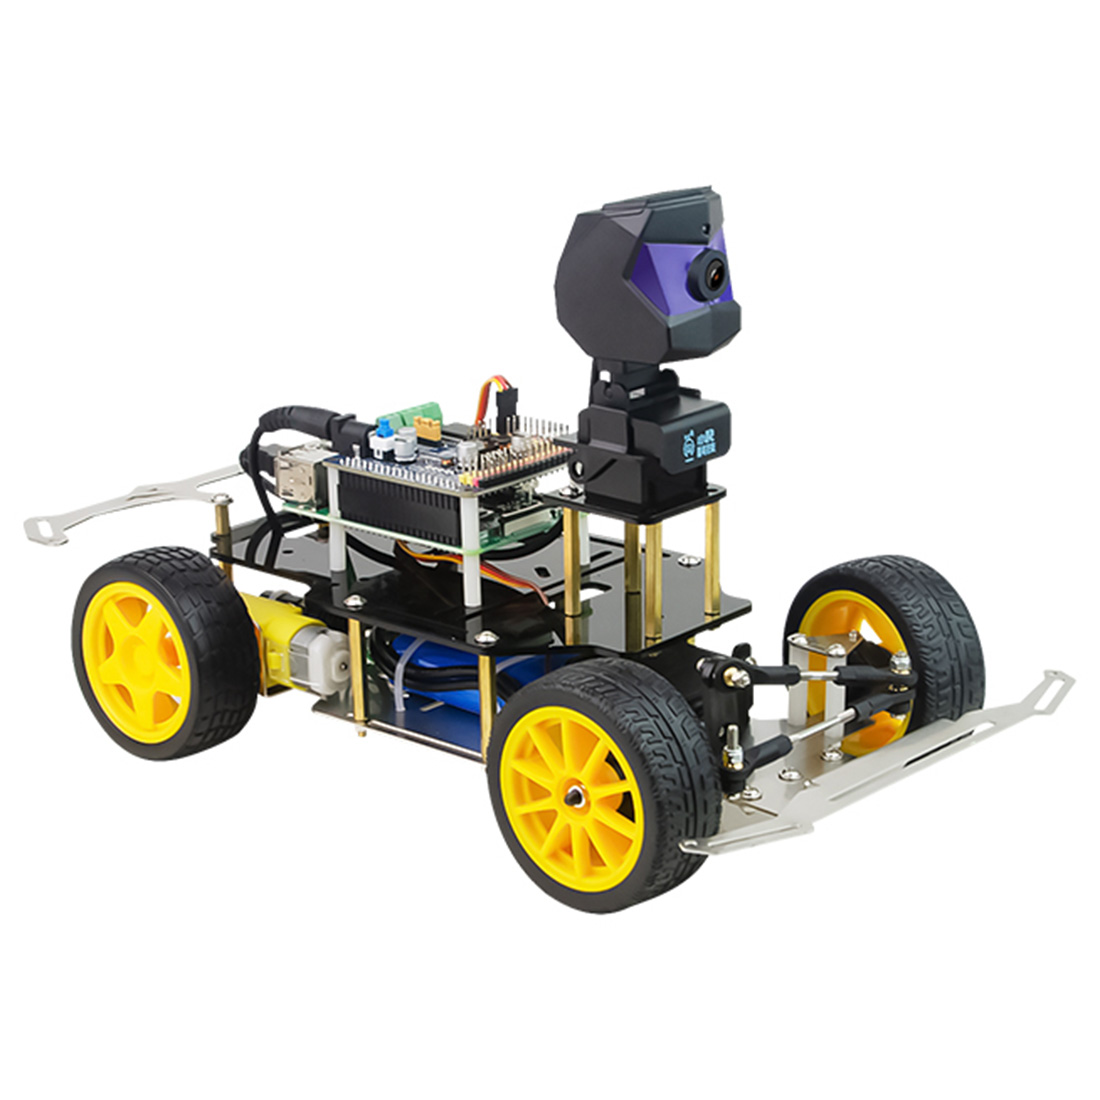 NFSTRIKE Donkey Car Smart AI Line Follower Robot Opensource DIY Self Driving Platform For Raspberry Pi RC Car  Programmable Toys